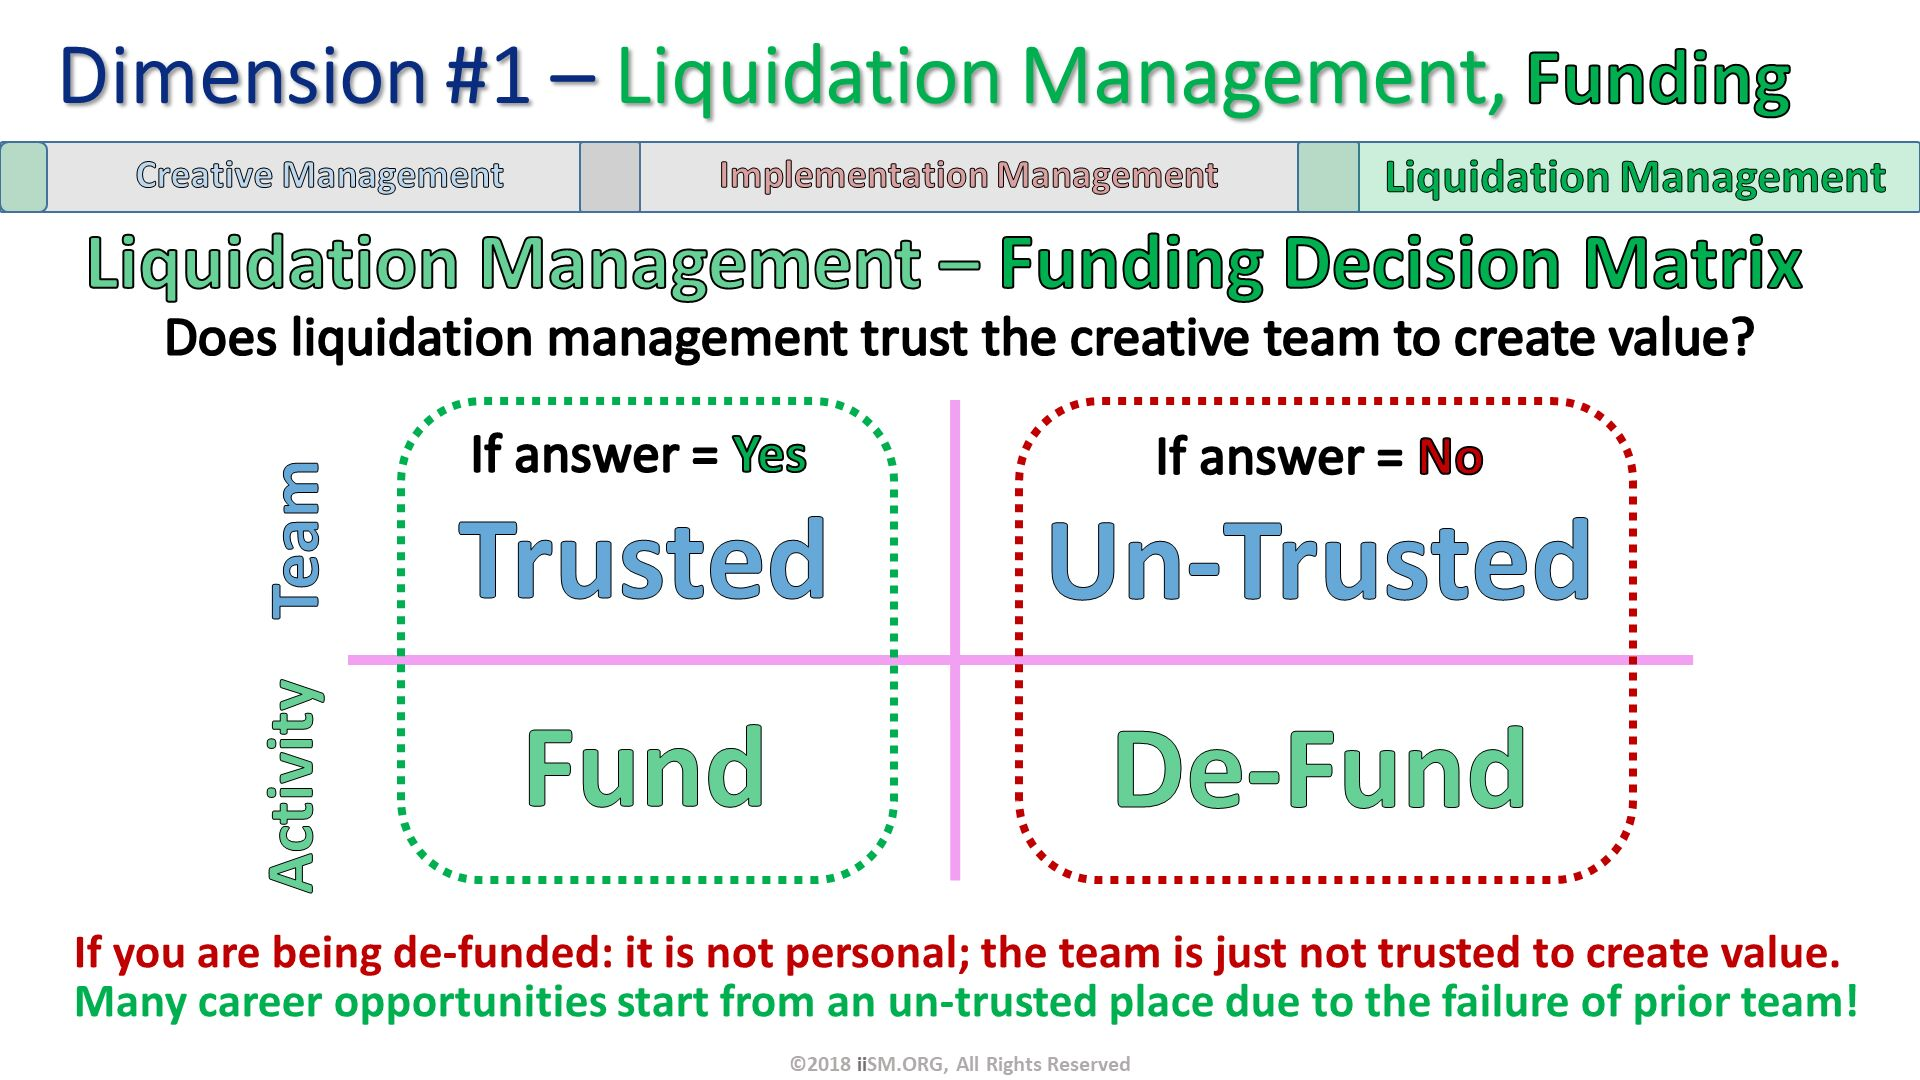 Dimension #1 – Liquidation Management, Funding. Liquidation Management – Funding Decision Matrix. Fund. De-Fund. Activity. Trusted. Un-Trusted. Team. ©2018 iiSM.ORG, All Rights Reserved. If answer = Yes. If answer = No. Does liquidation management trust the creative team to create value?. If you are being de-funded: it is not personal; the team is just not trusted to create value.Many career opportunities start from an un-trusted place due to the failure of prior team!.